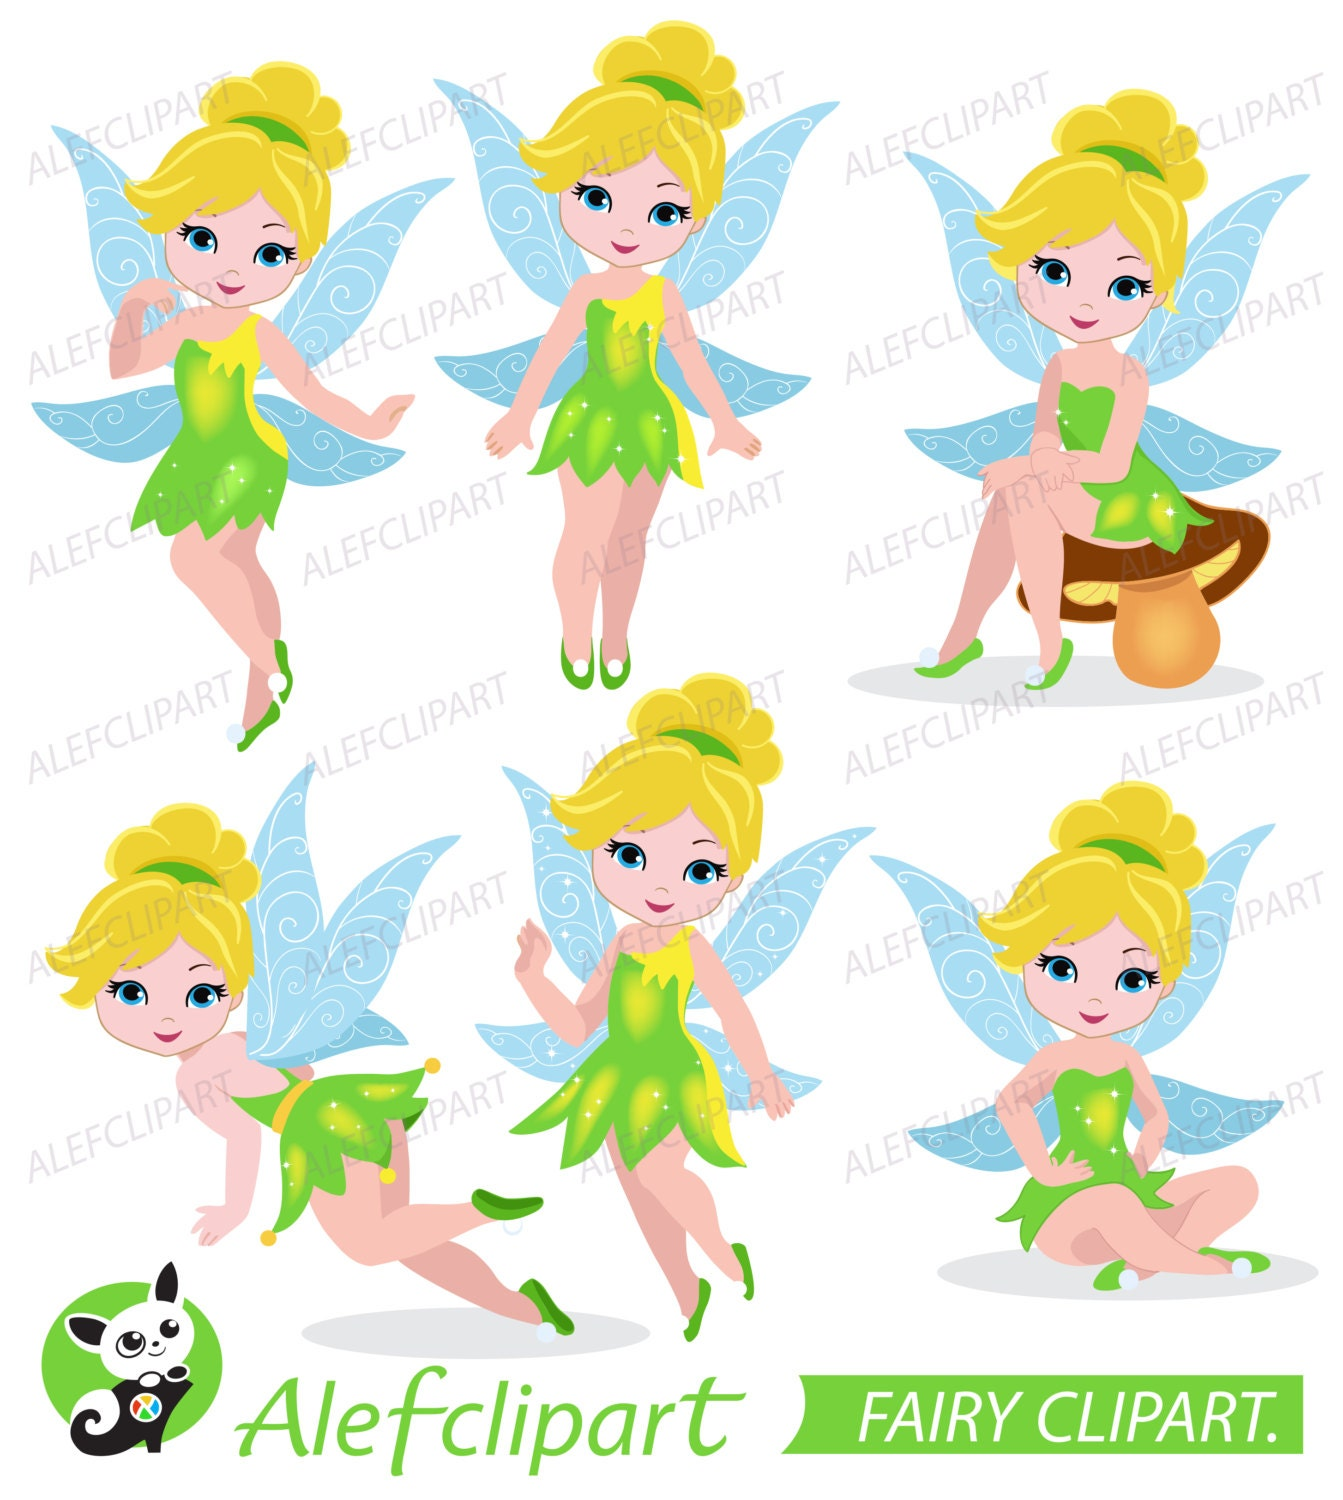 alefclipart by alefclipart on etsy - HD 1343×1500